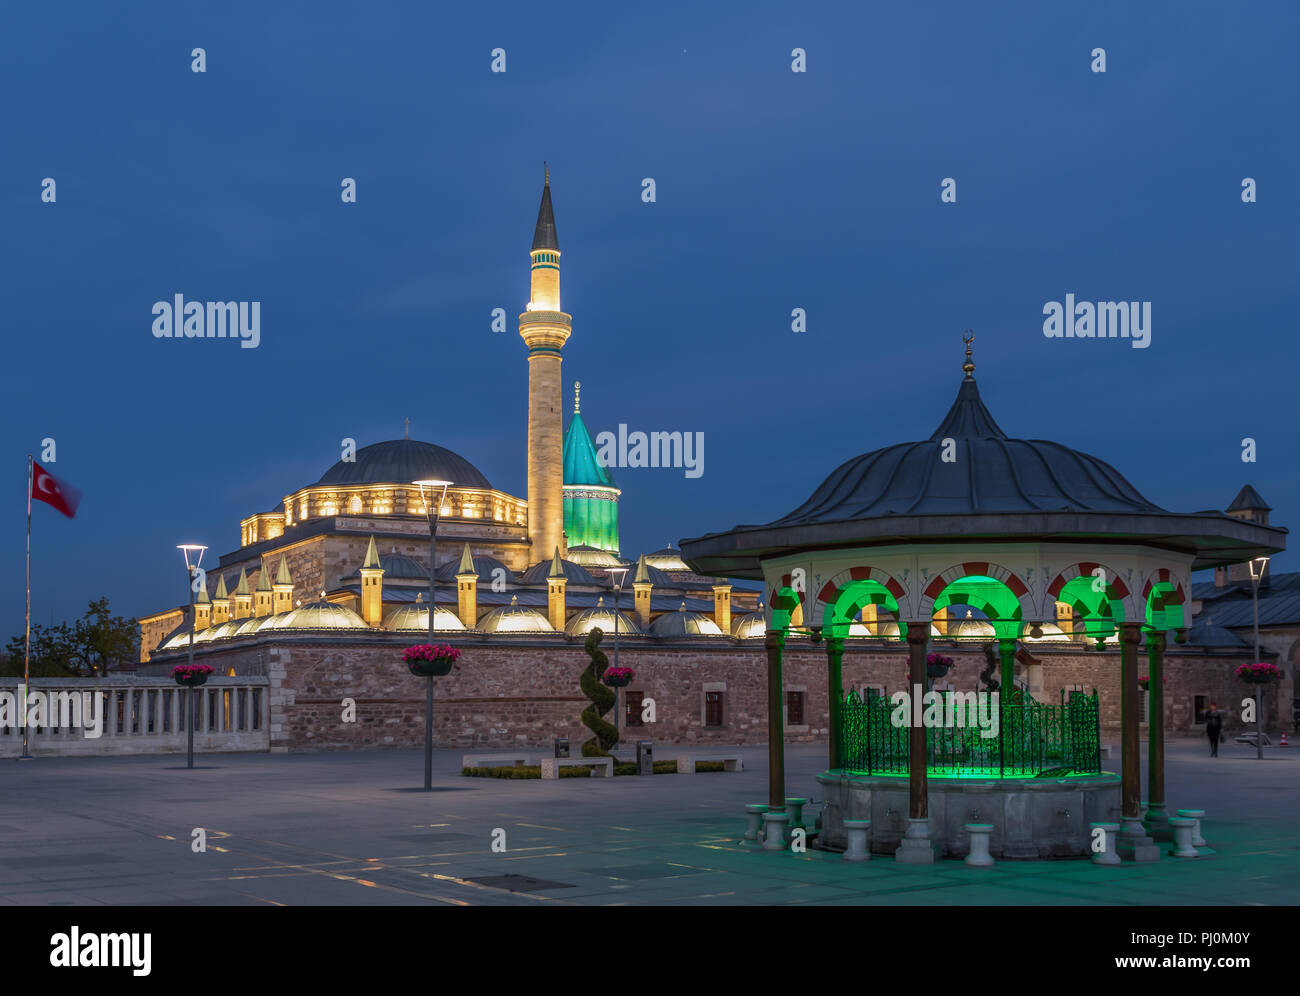 Konya is a major city of the Anatolian Plateau, once capital of the Seljuk Sultanate and famous today for the dervishes shows and the Mevlana Museum - Stock Image